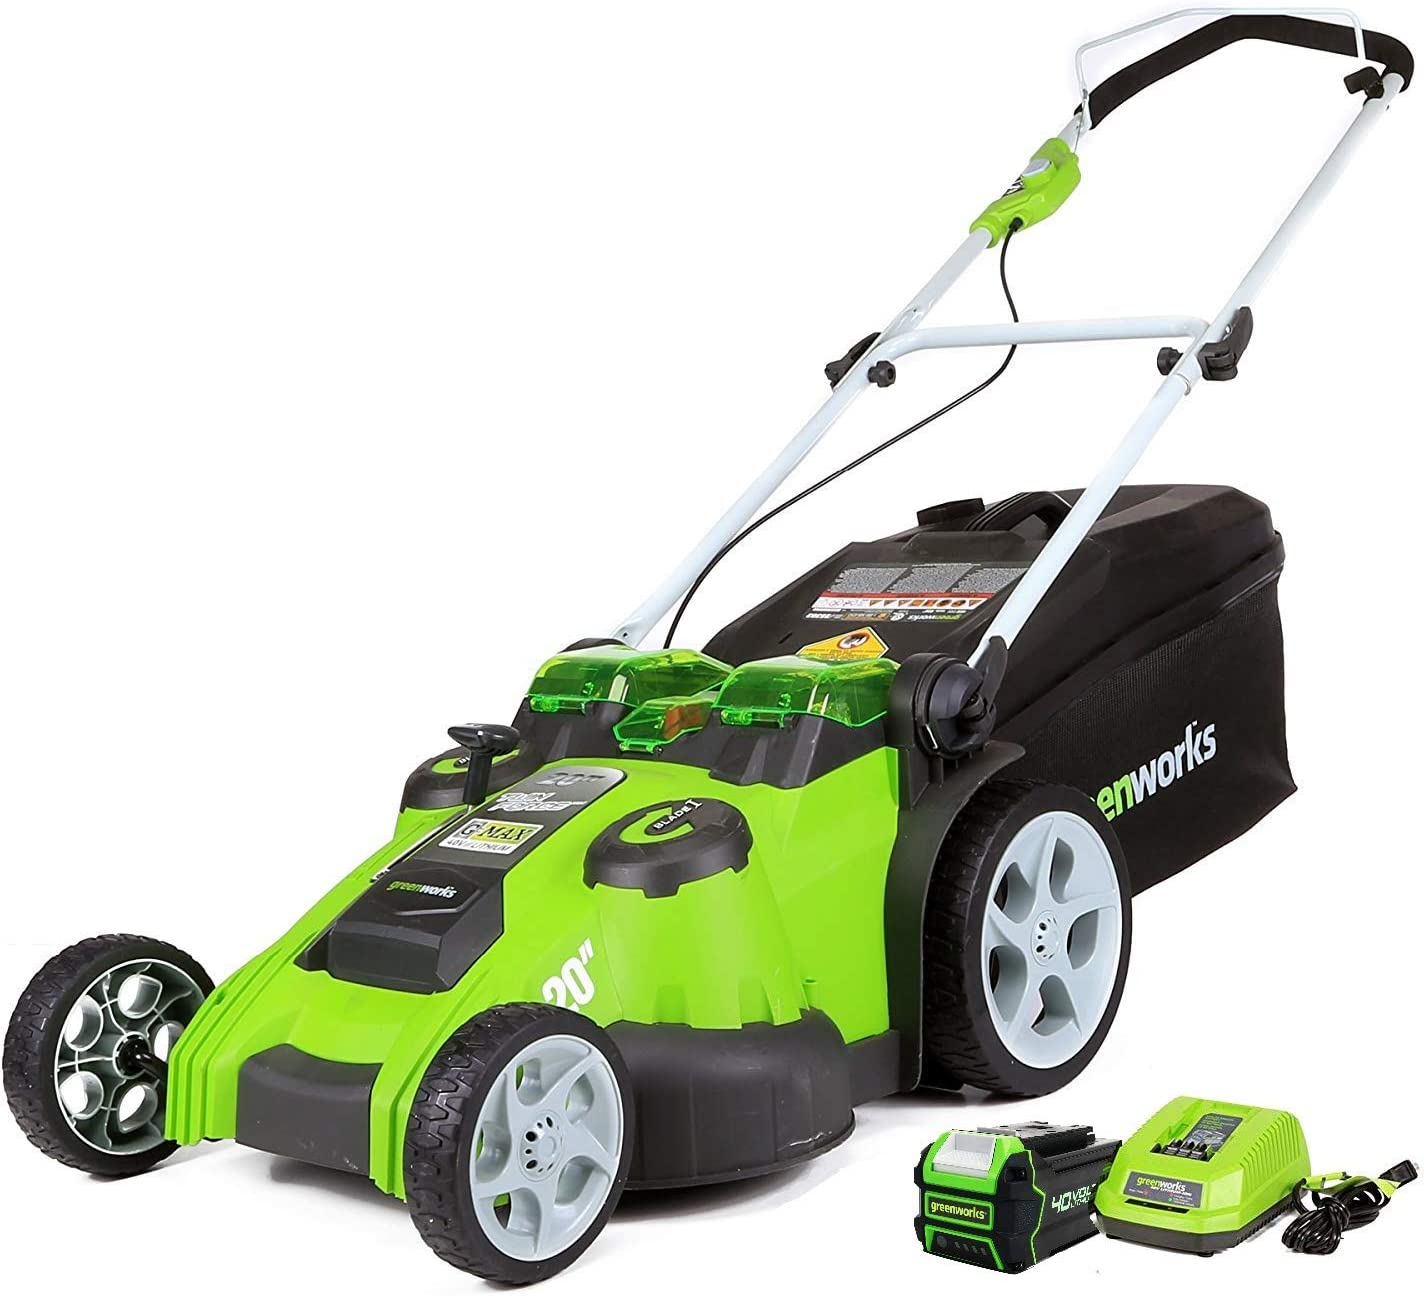 Greenworks 25302 Twin Force Cordless Lawn Mower